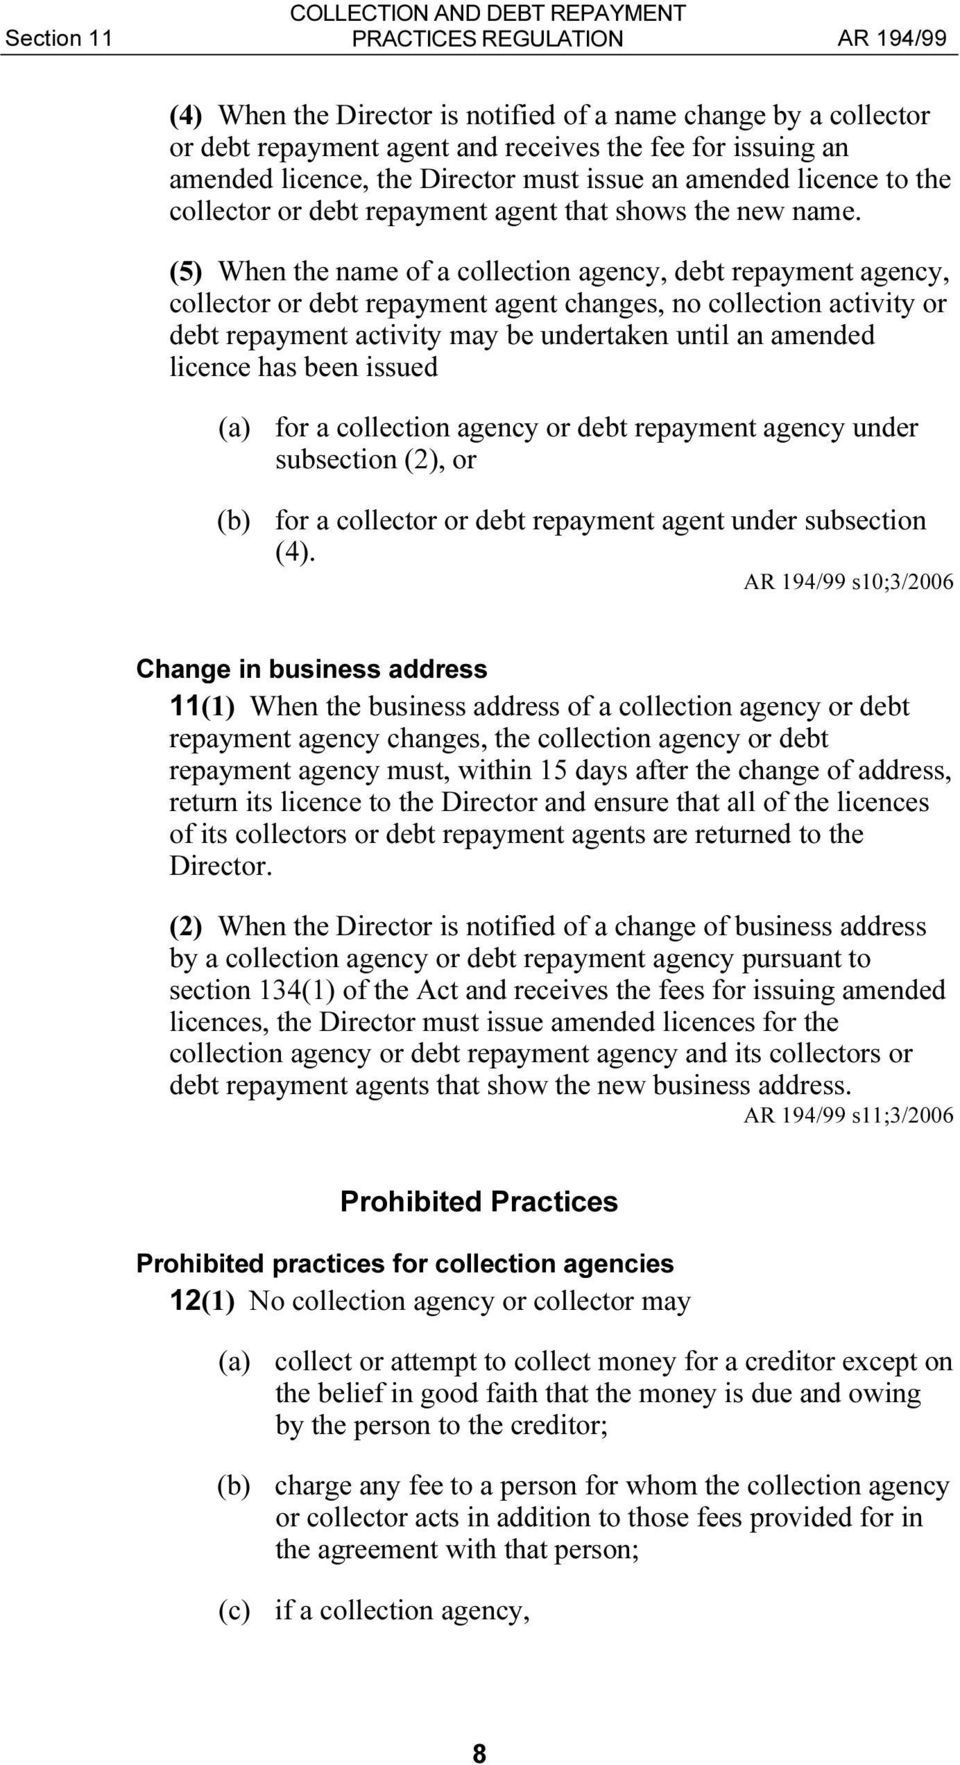 (5) When the name of a collection agency, debt repayment agency, collector or debt repayment agent changes, no collection activity or debt repayment activity may be undertaken until an amended